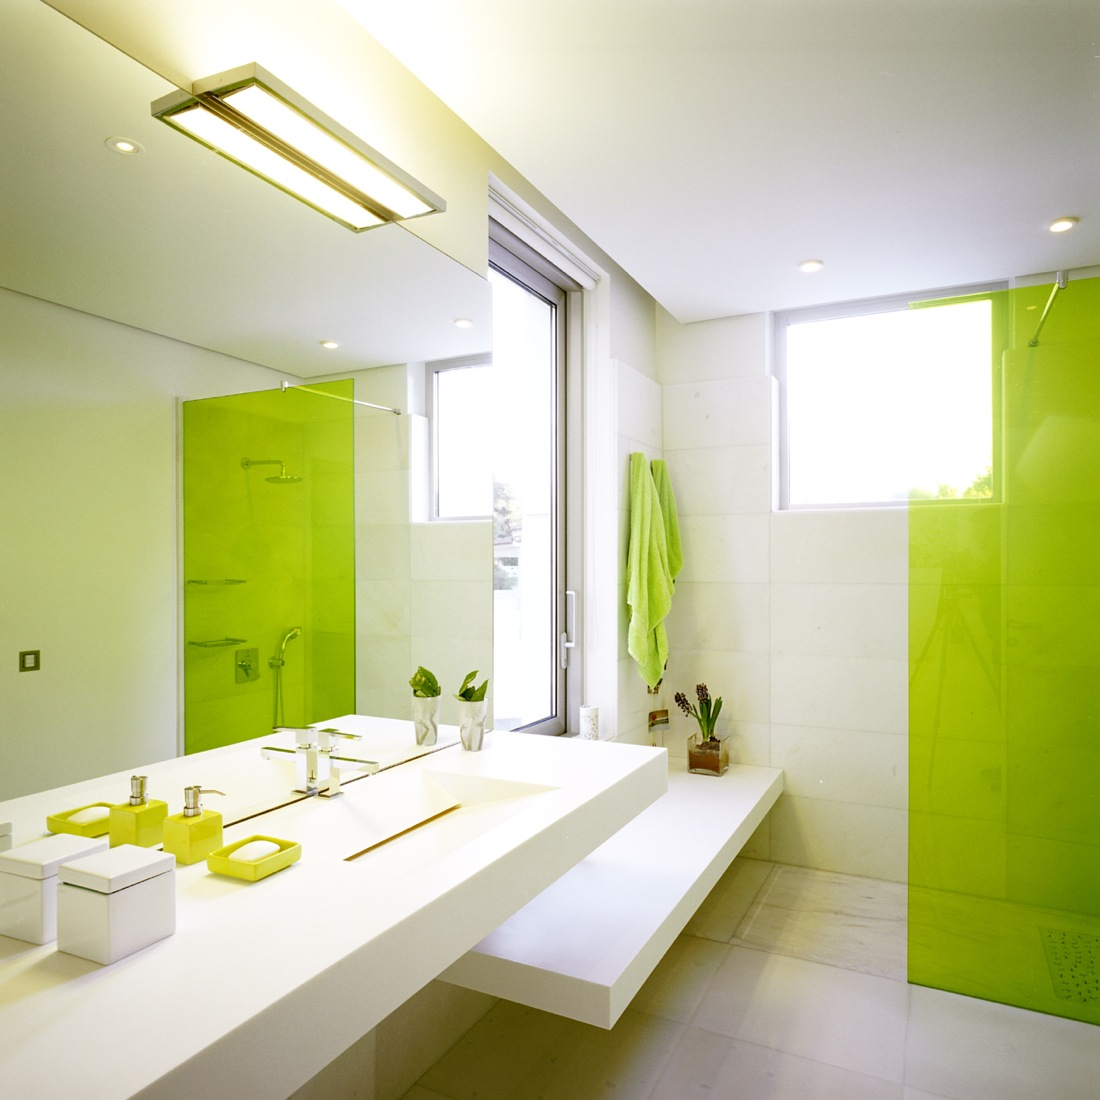 Minimalist bathroom designs home designs project for Bathroom interior ideas